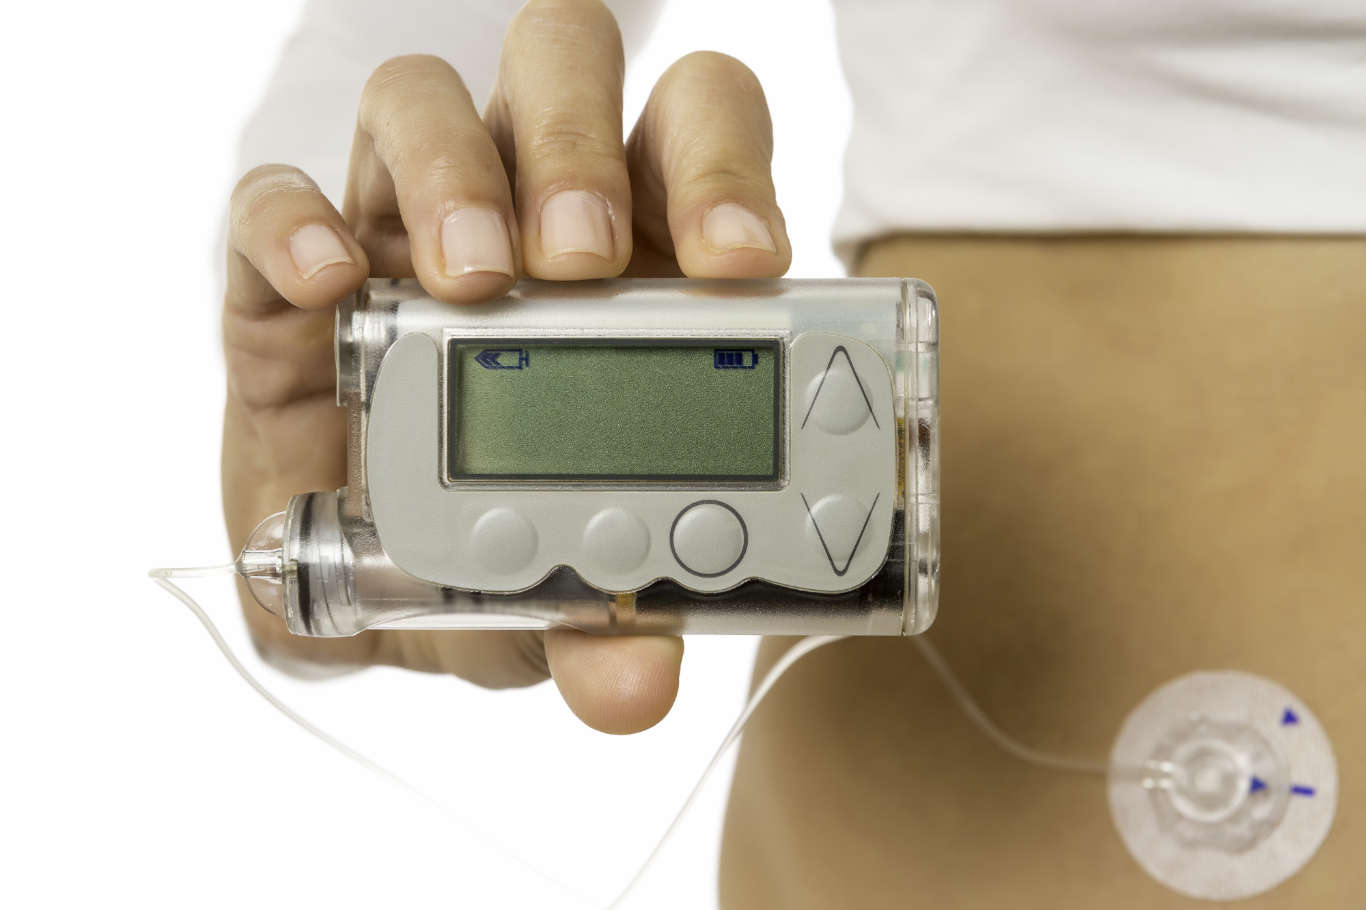 Global Insulin Pump Market Segment Forecast 2023 – Market Size, Share & Trends Analysis Report 2018 to till 2023